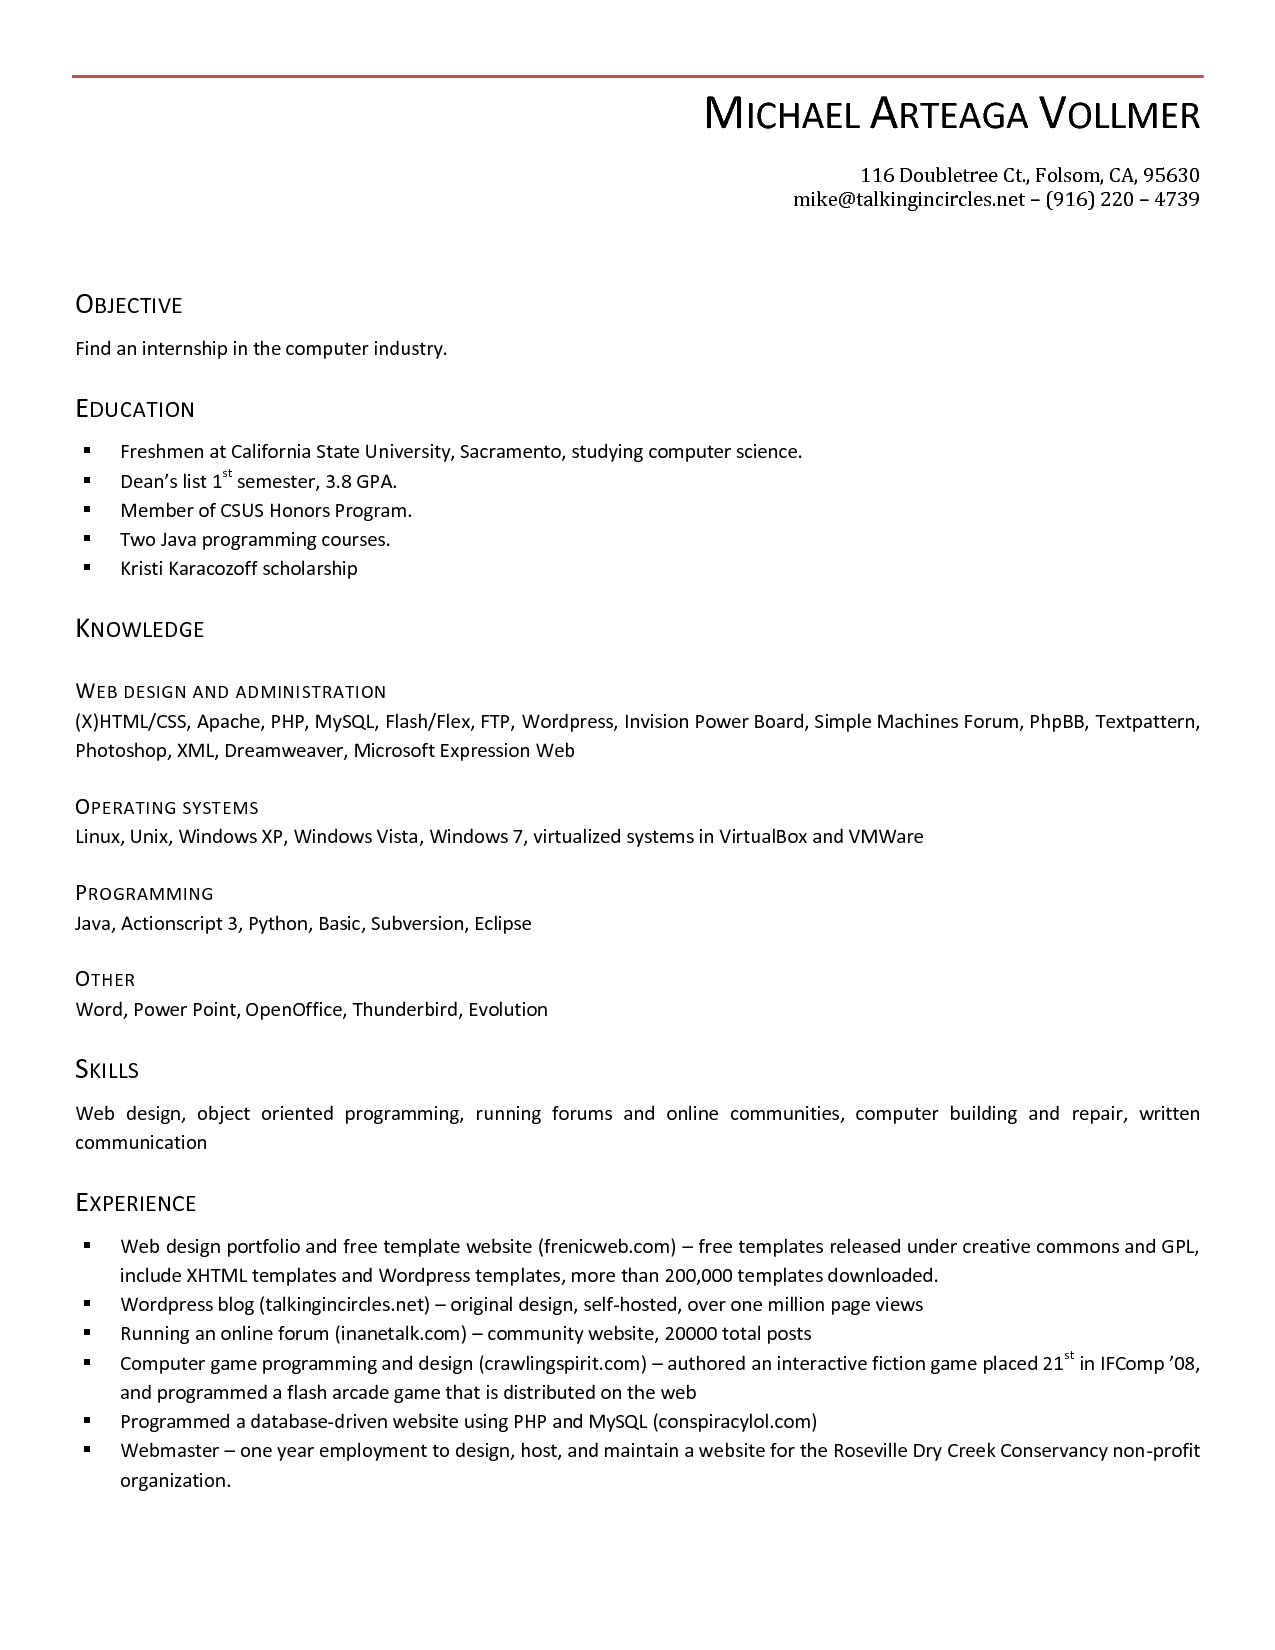 open office resume wizard - Free Resume Wizards